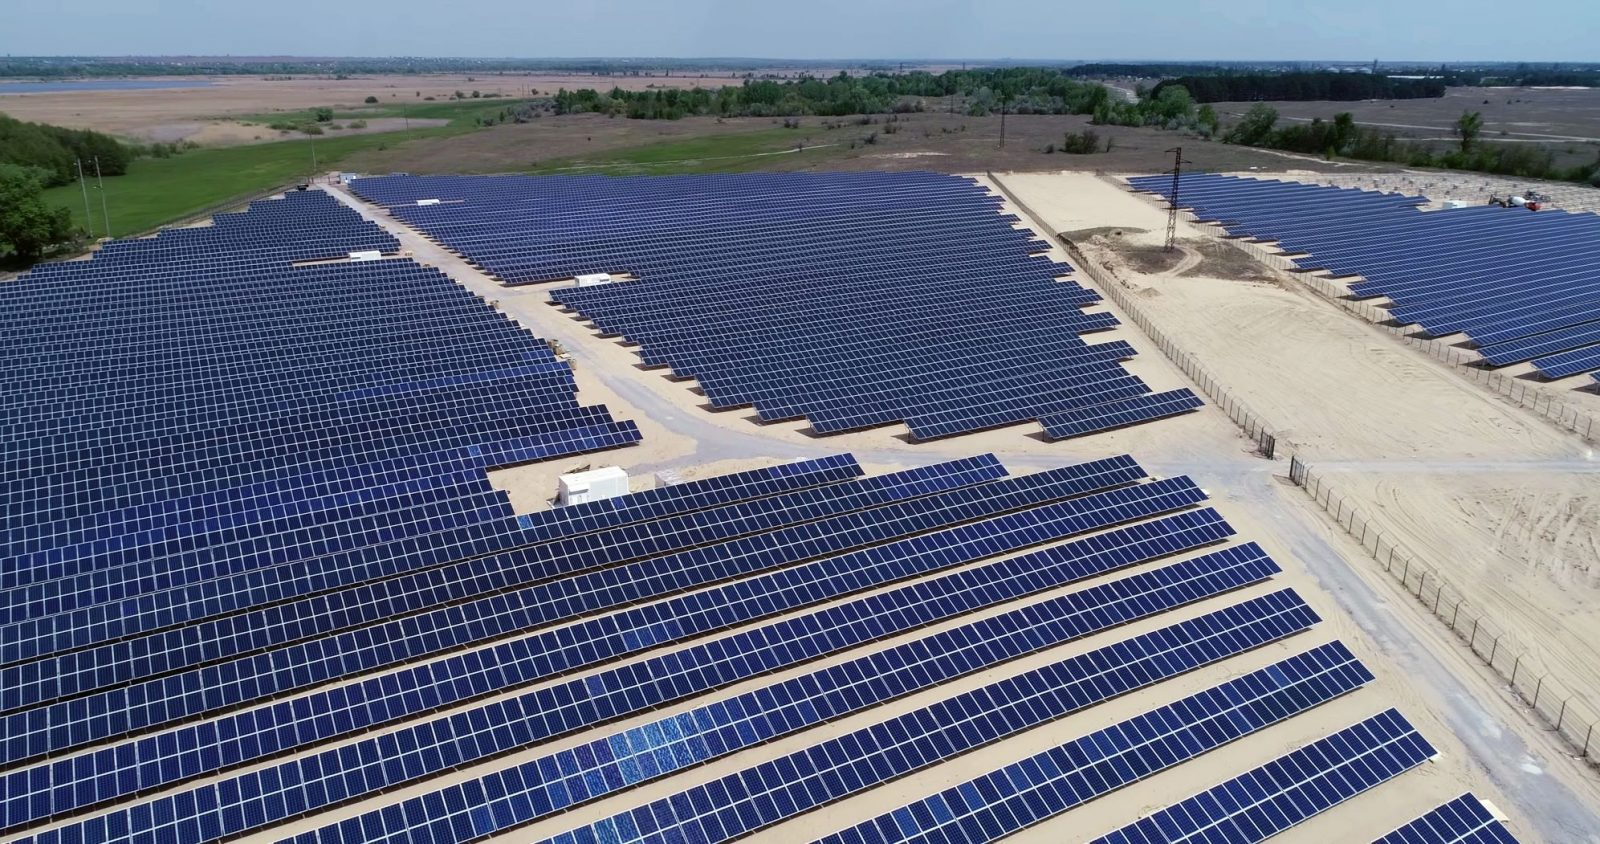 Image of solar farm. USTDA announced its latest partnership to support climate-smart infrastructure in India.